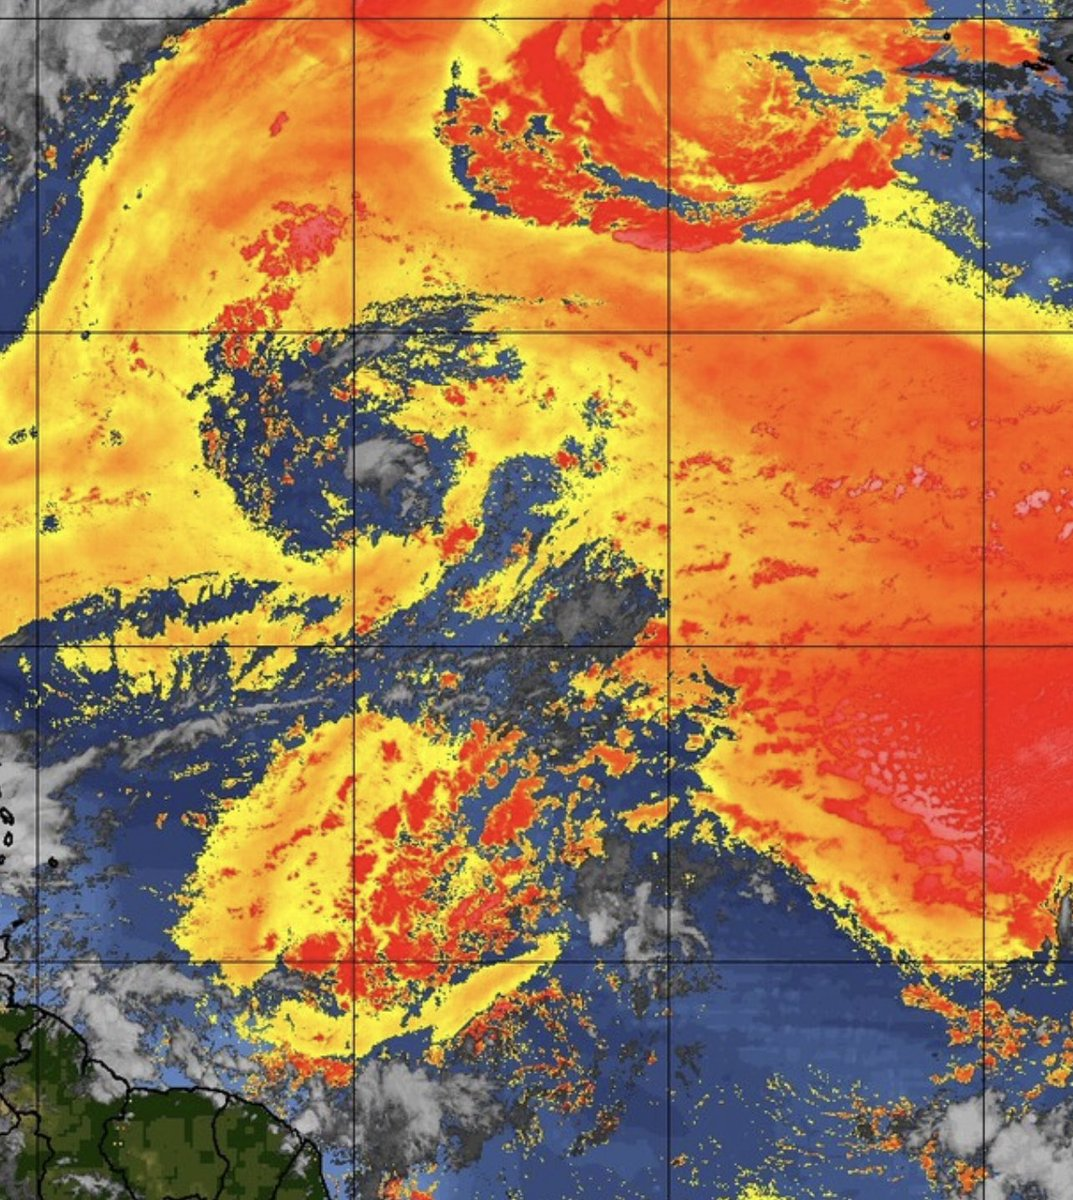 Seriously such #weather #drama like some sort of #scifiromance #fantasy #novel. #SAL throwing everything at it working in tandem with the #ULL but it's still there. #longshot #underdog wayward #wave #hurricaneseason2021 https://t.co/x696NtJfiv